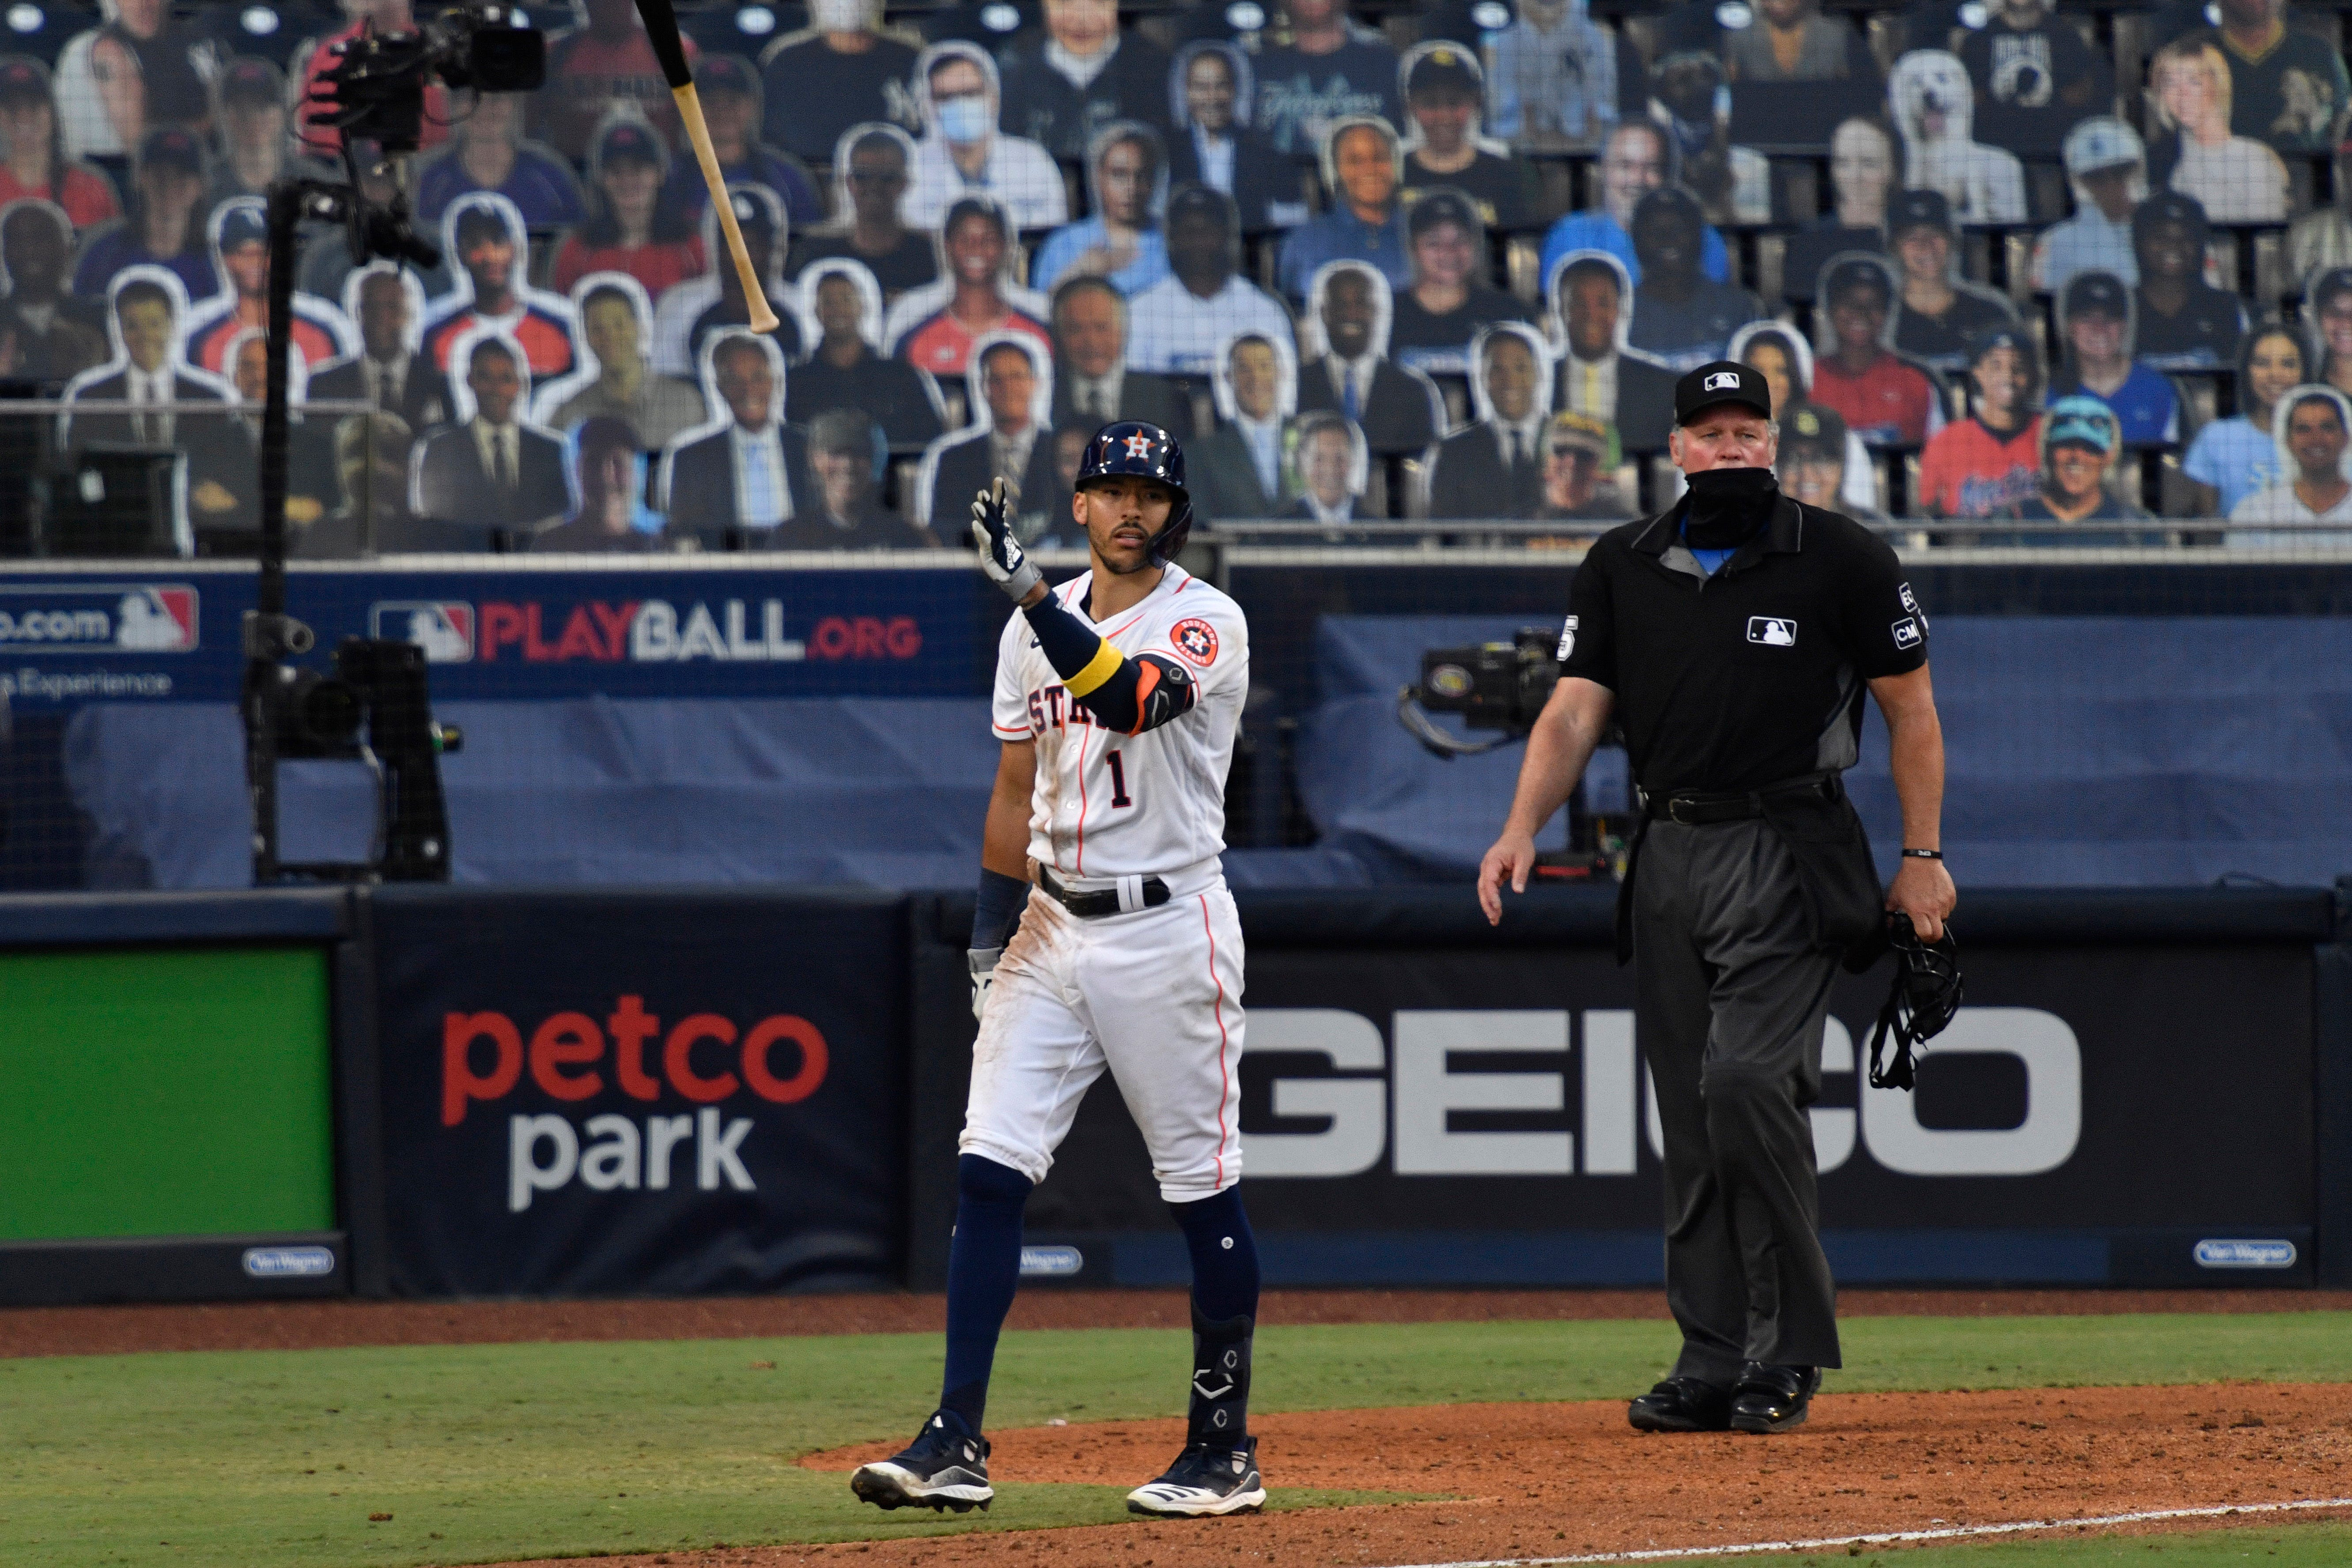 Astros star Carlos Correa calls his shot before walk-off homer in Game 5 against the Rays